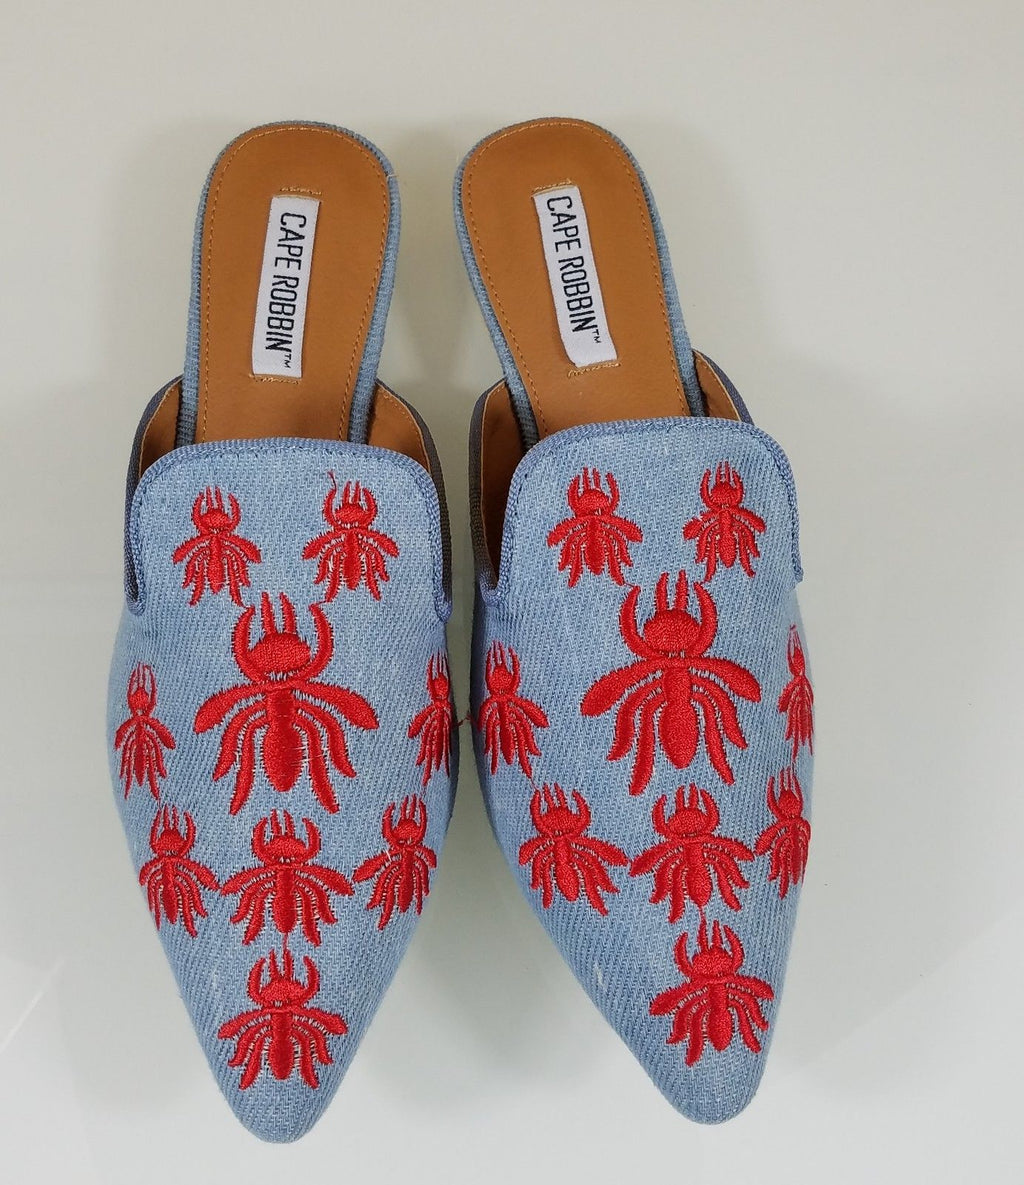 CR Pointy Toe Denim Flats Mules Clog Red Embroidered Bee Shoe Slippers